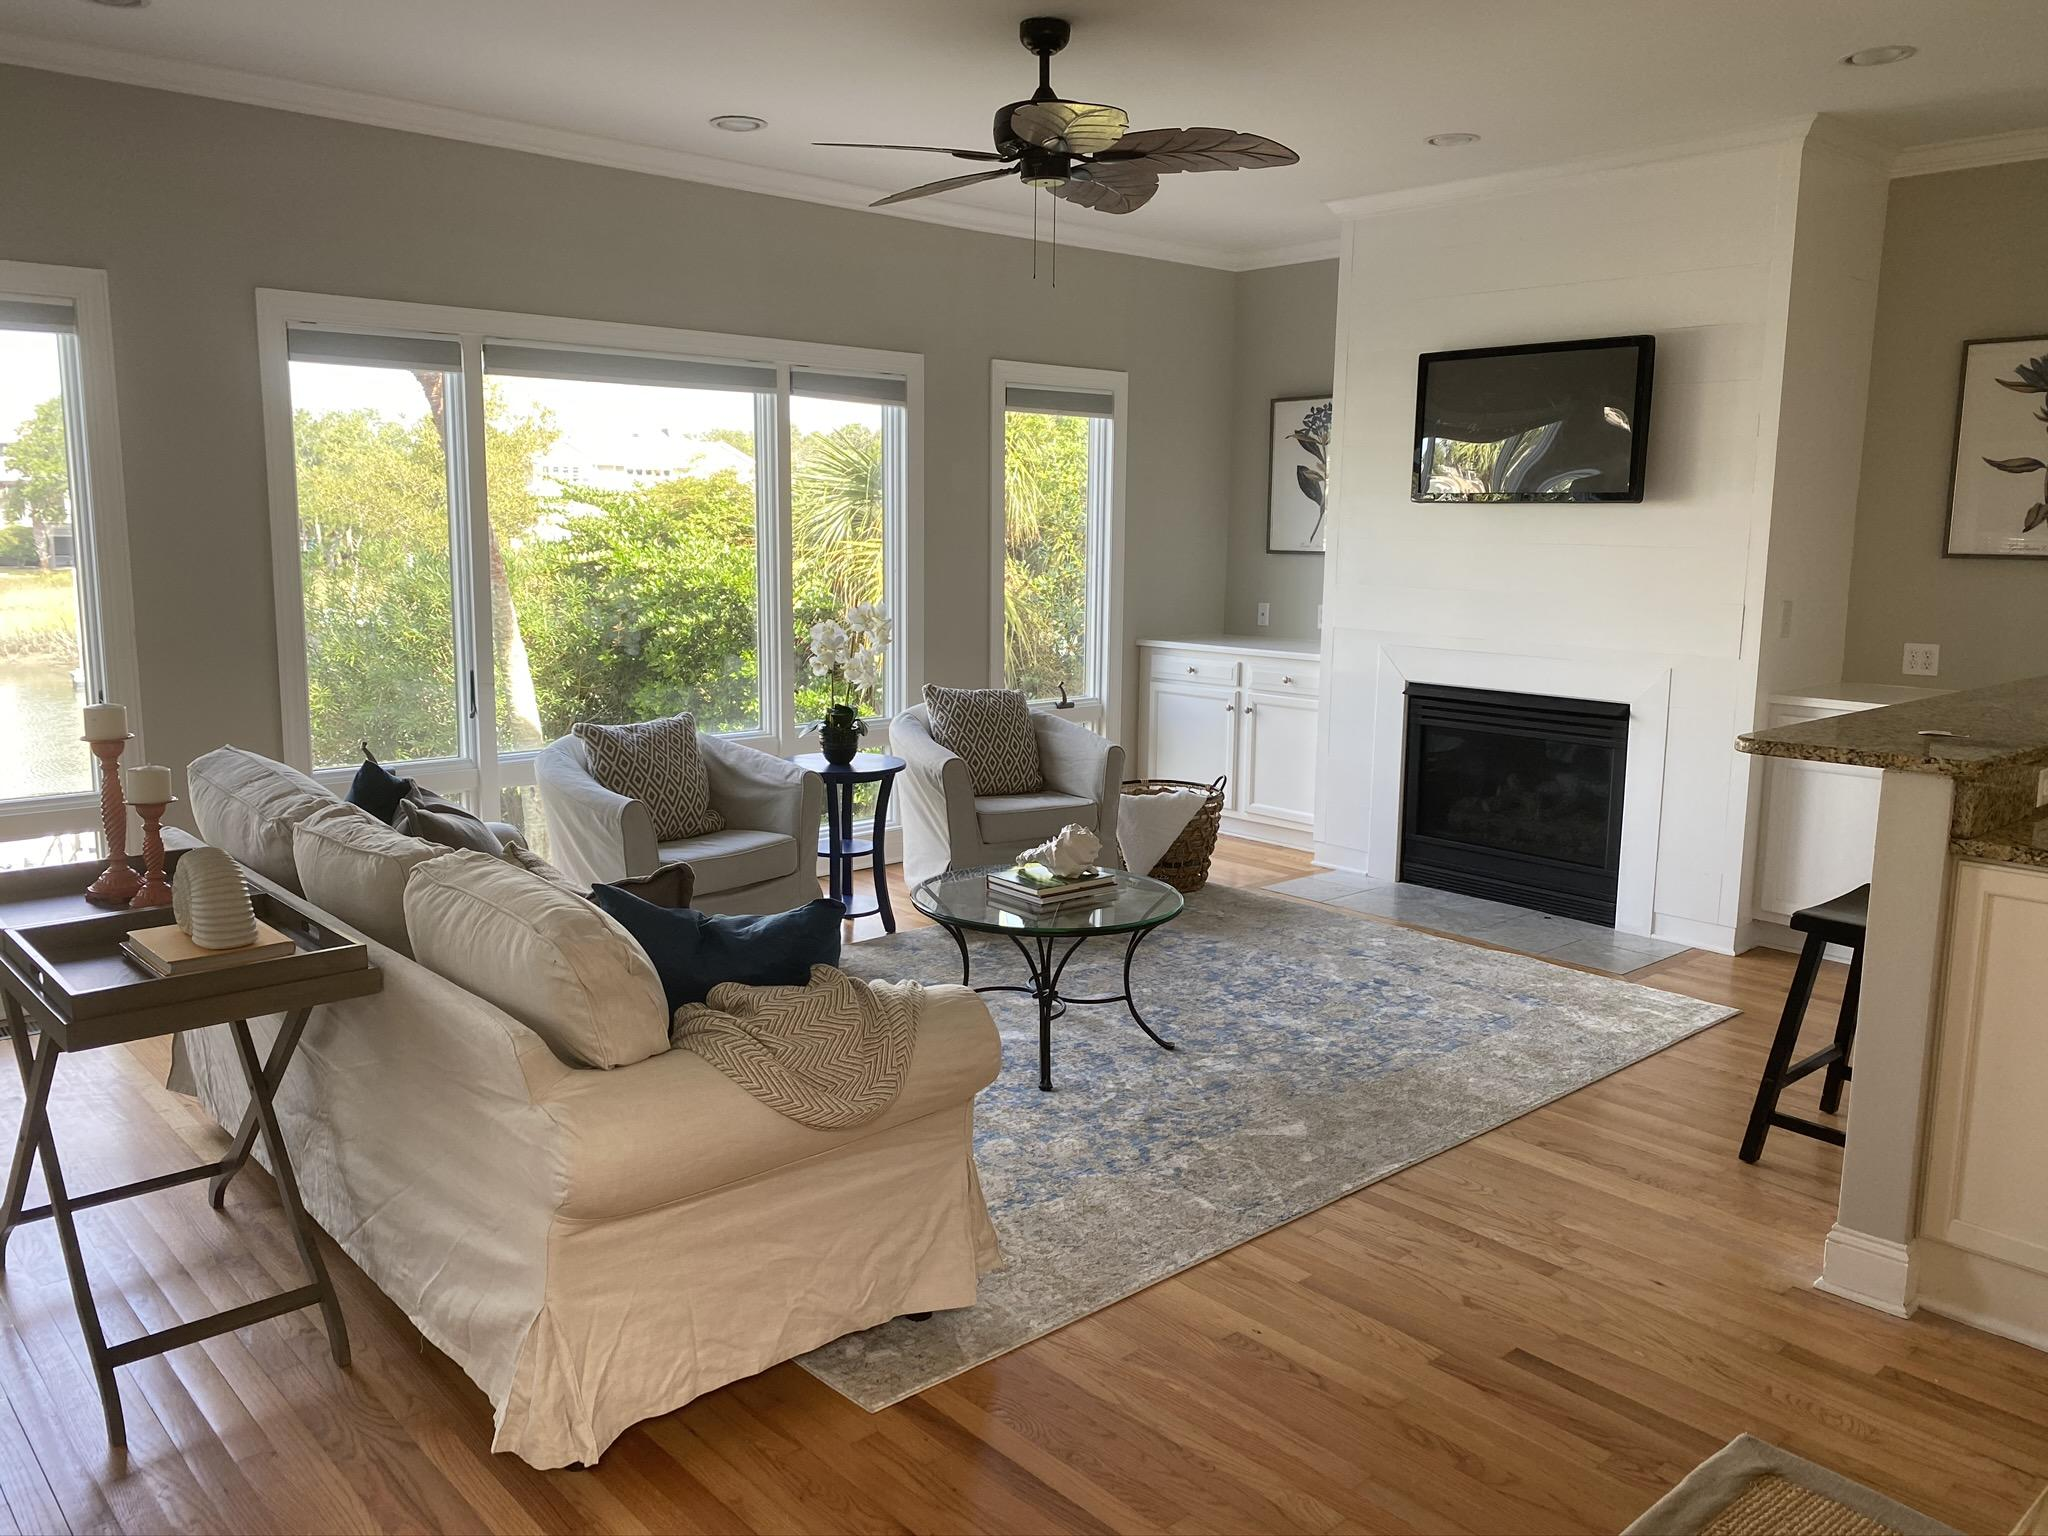 Wild Dunes Homes For Sale - 26 Morgan Place, Isle of Palms, SC - 22